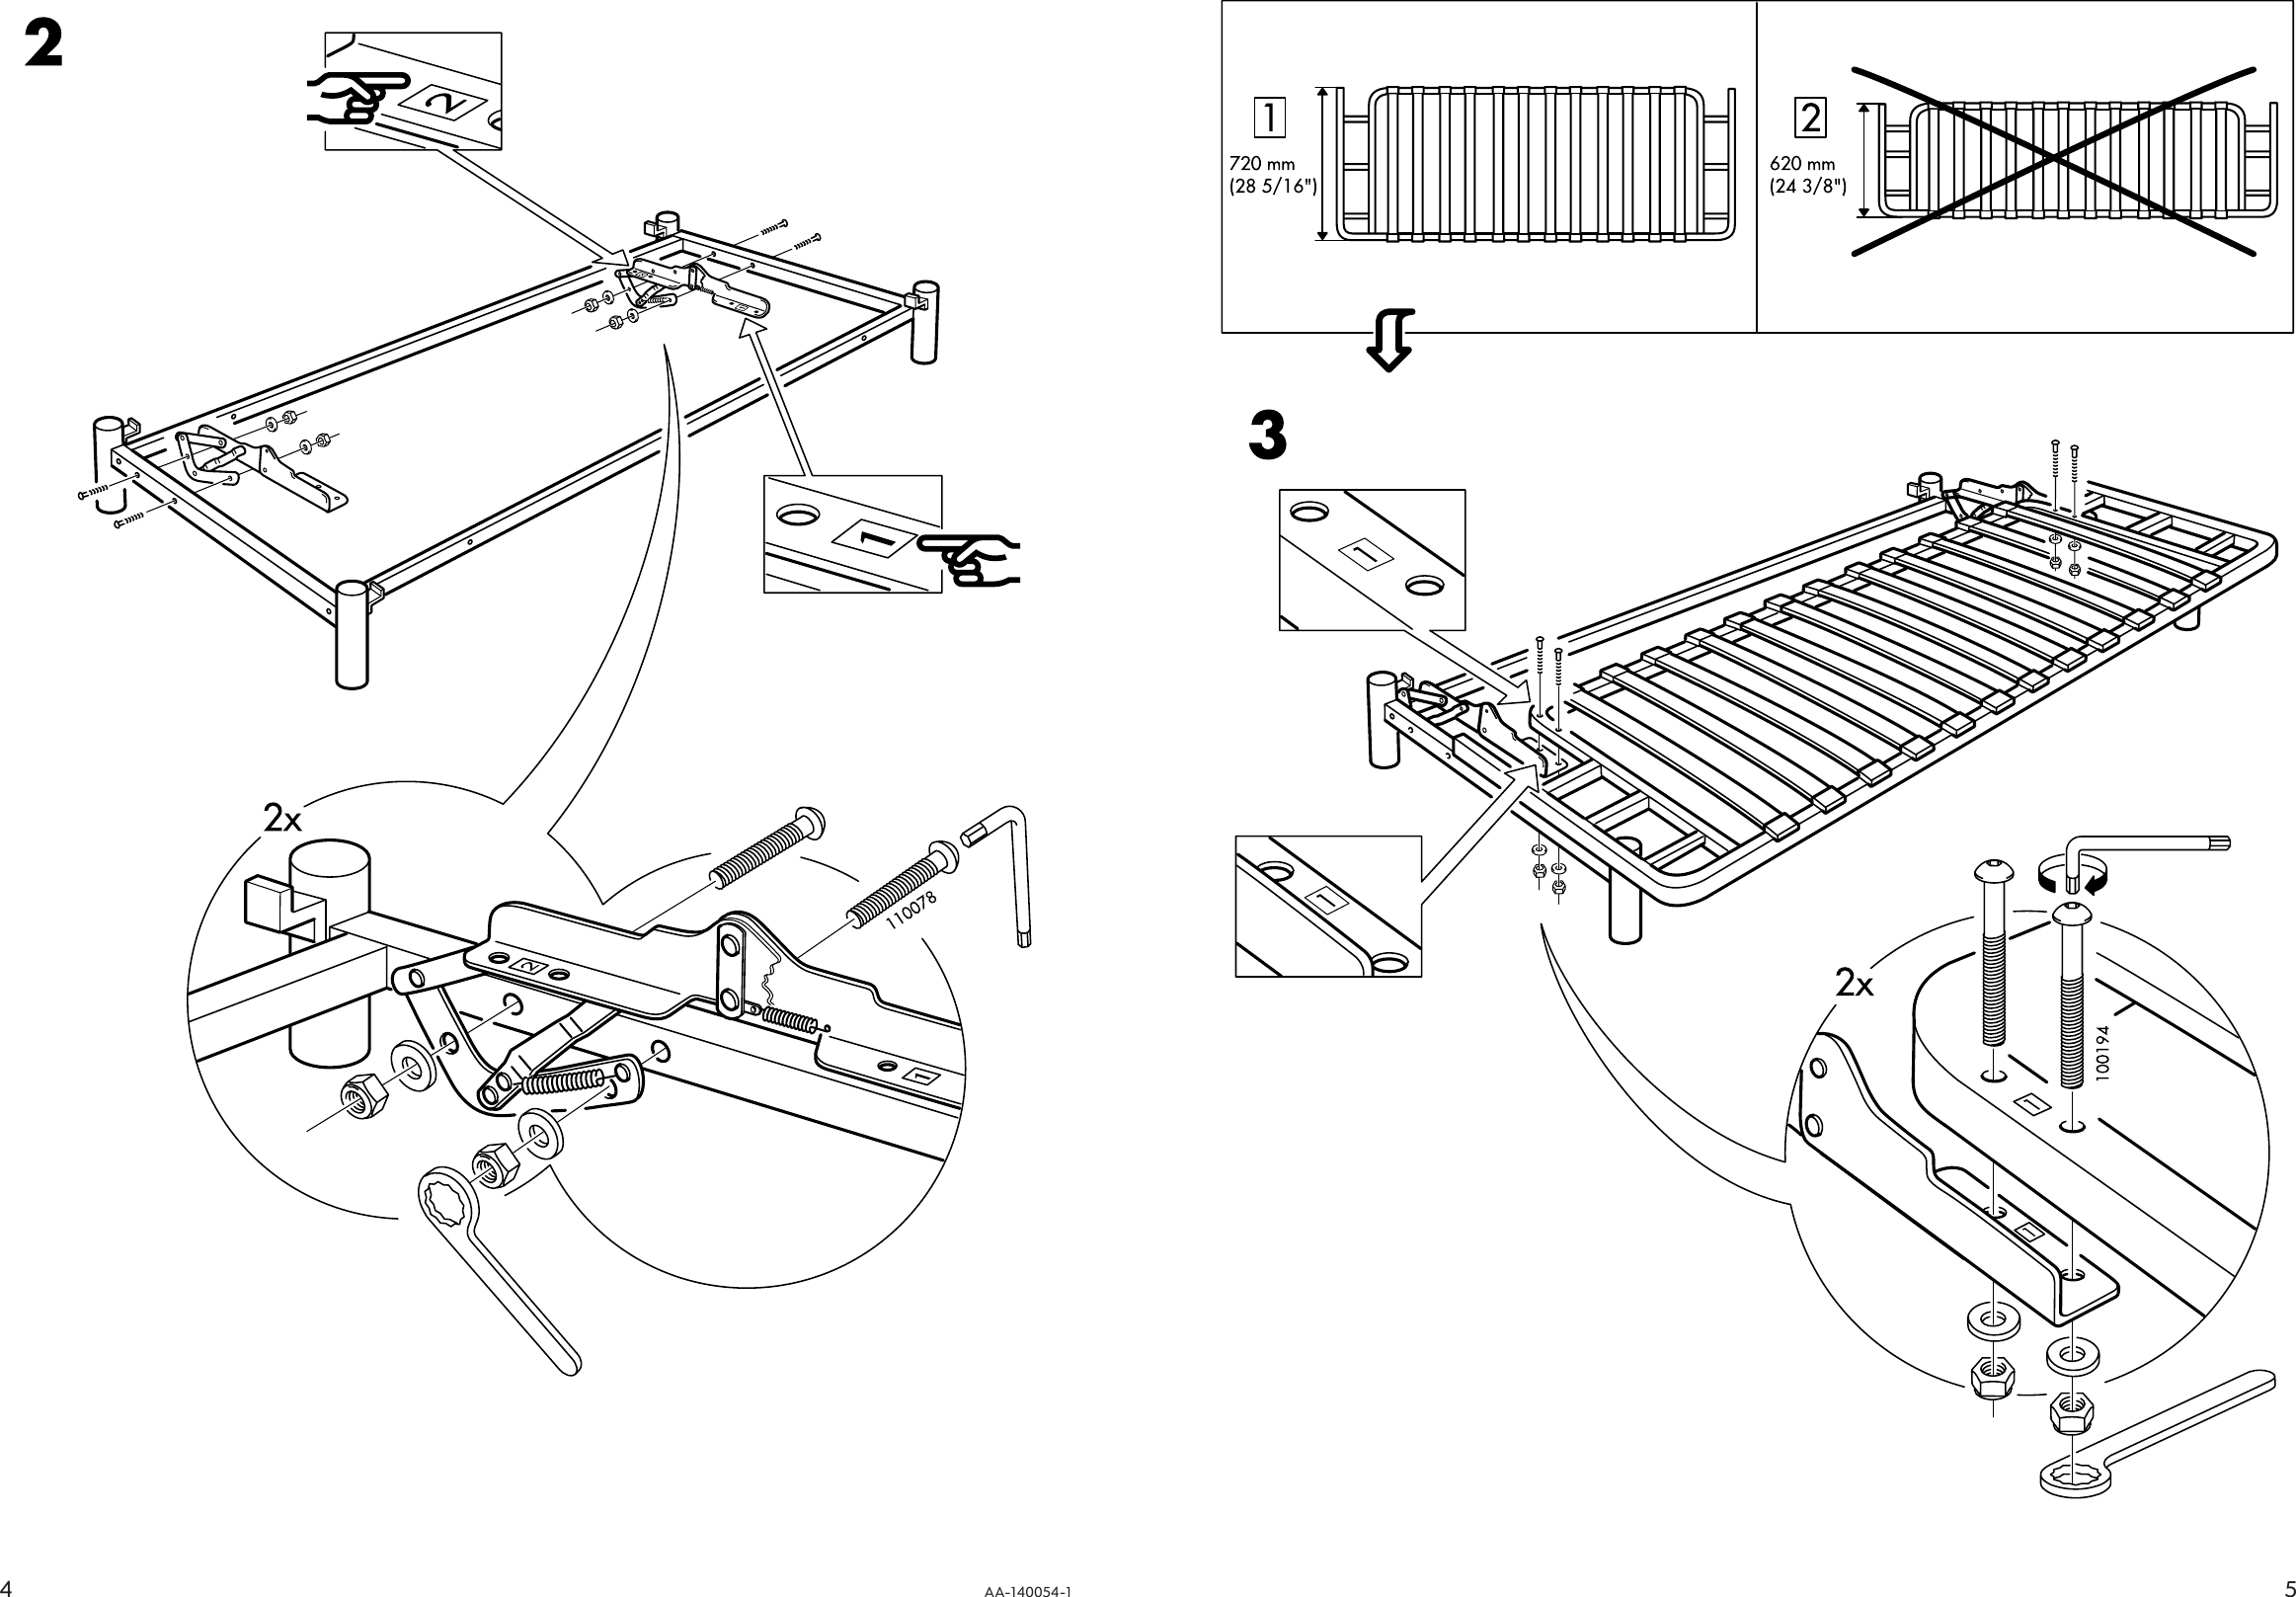 Page 4 of 4 - Ikea Ikea-Beddinge-Sofabed-Frame-Assembly-Instruction-2  Ikea-beddinge-sofabed-frame-assembly-instruction